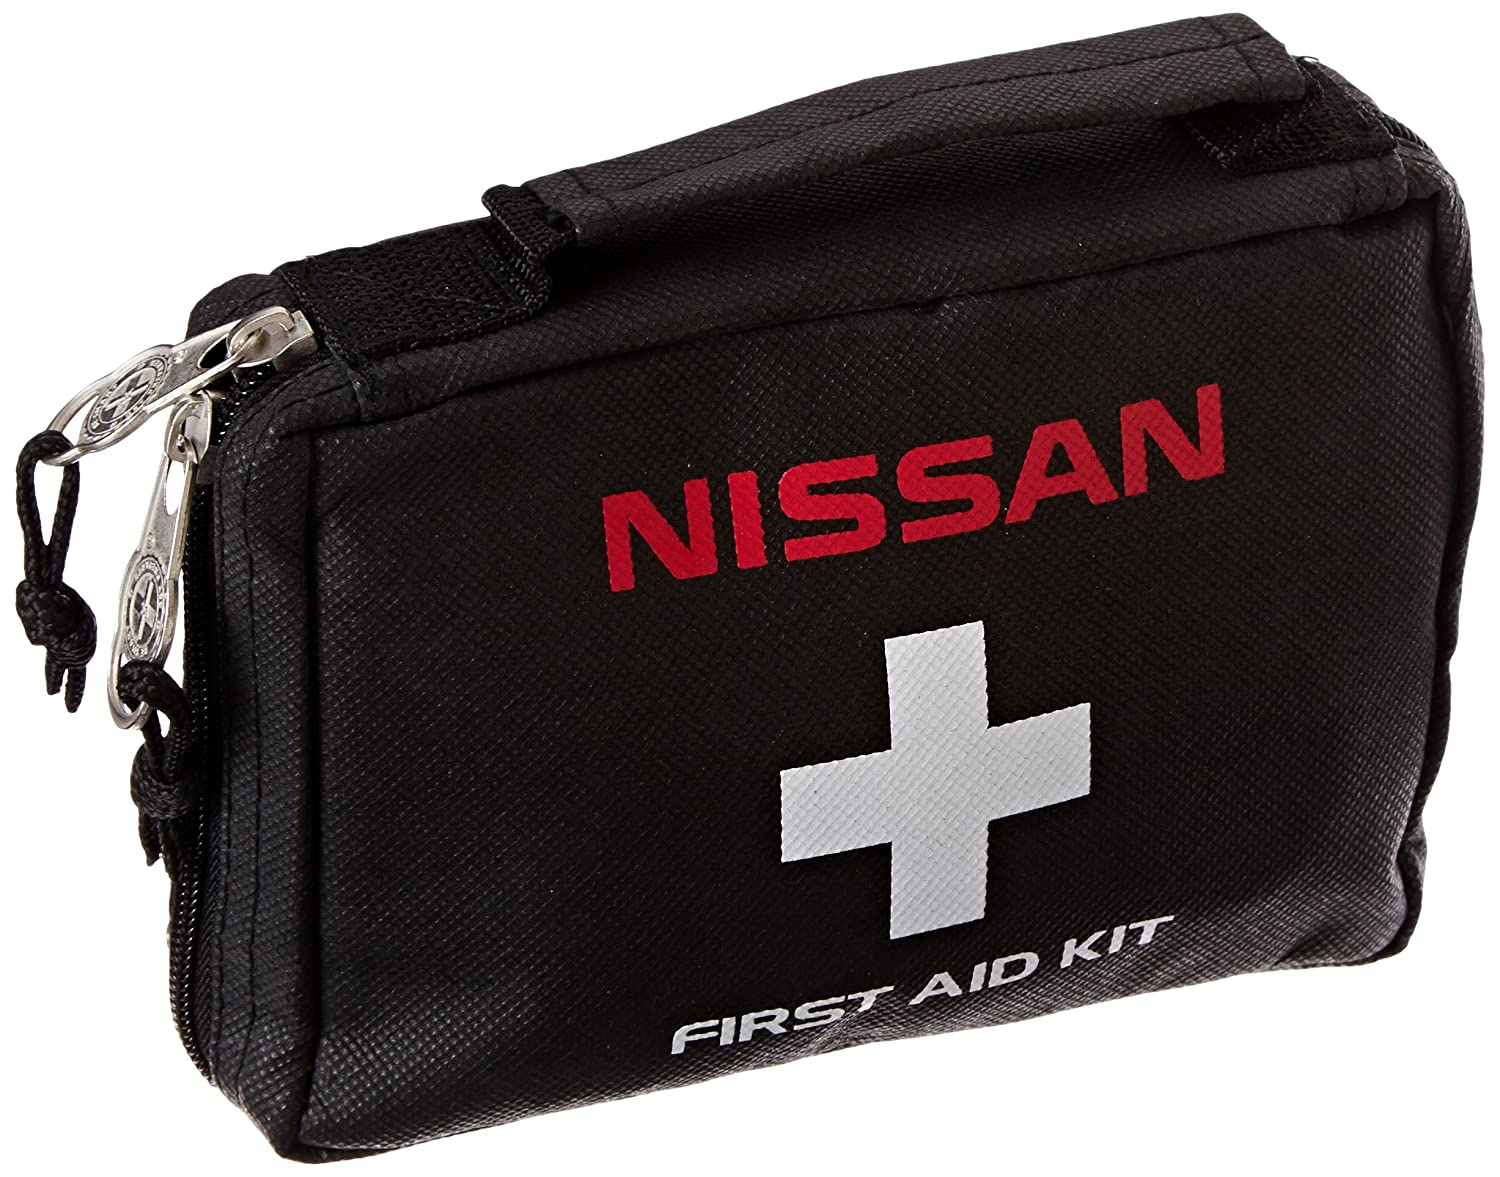 Nissan Genuine Accessories 999A3-8X000 First Aid Kit